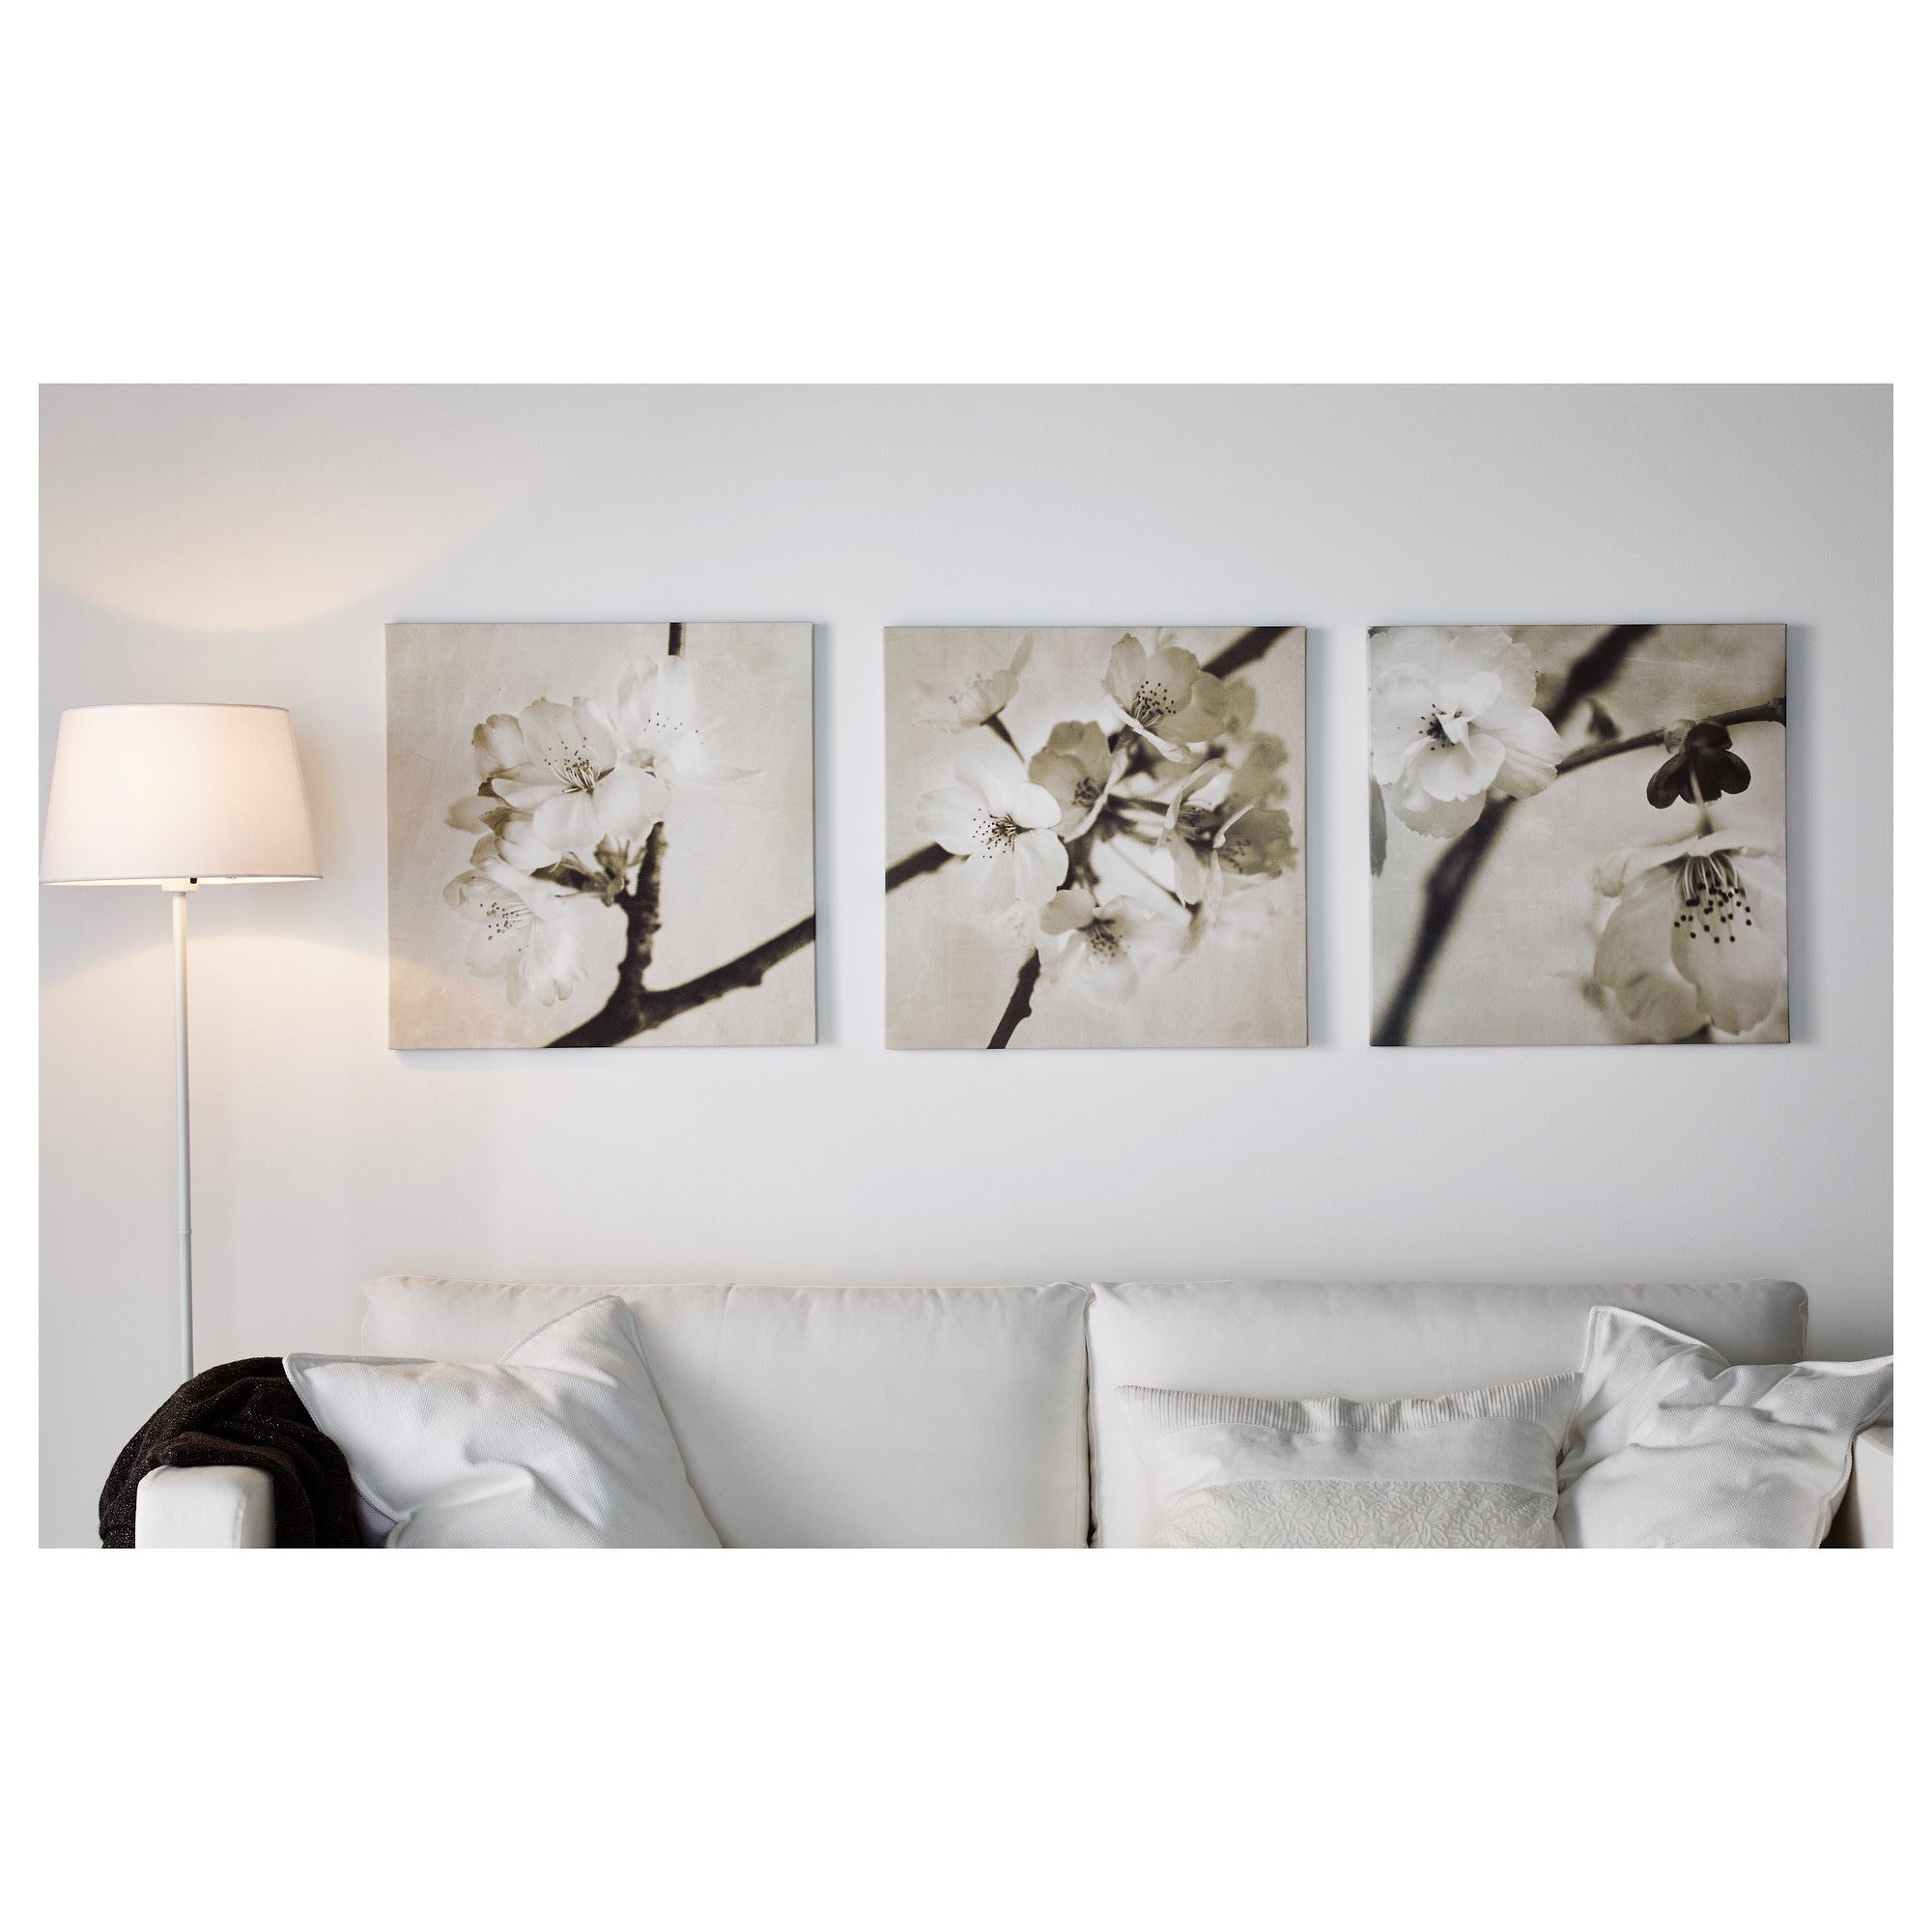 canvas wall art ikea v wall decal. Black Bedroom Furniture Sets. Home Design Ideas